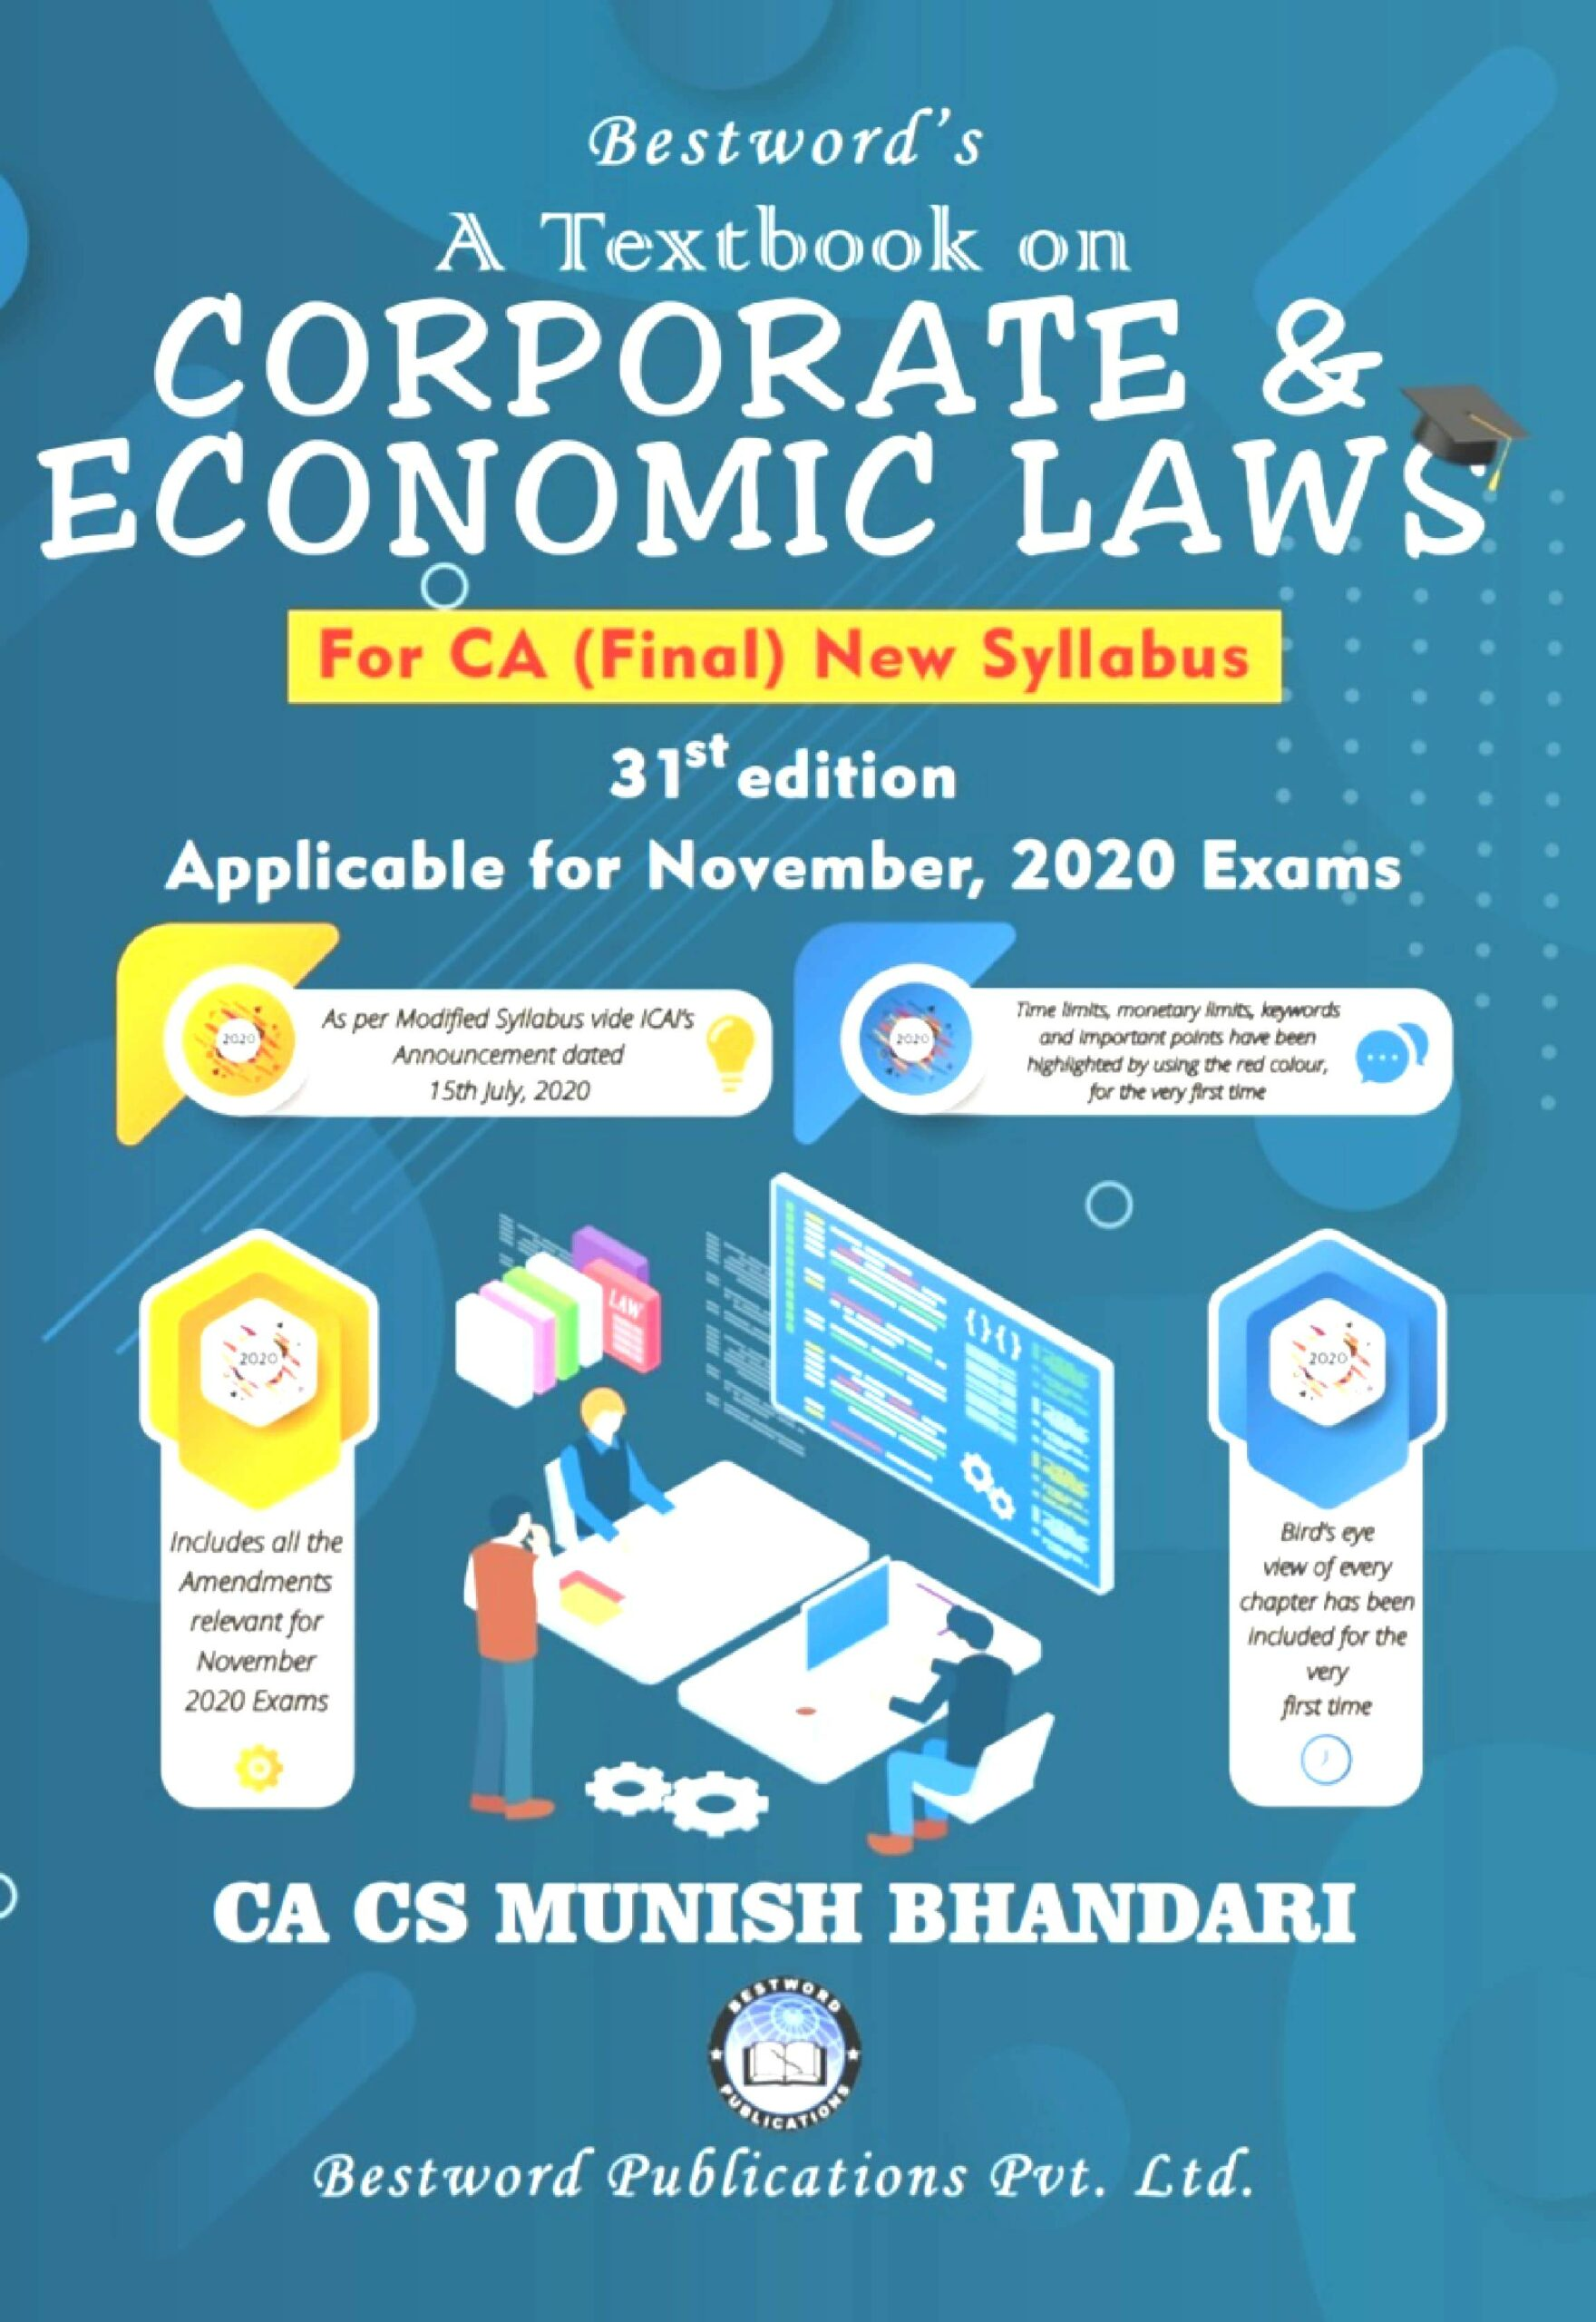 Bestword A Textbook on Corporate And Economic Laws New Syllabus for CA Final By Munish Bhandari Applicable for Nov 2020 Exam Available after 10.08.2020